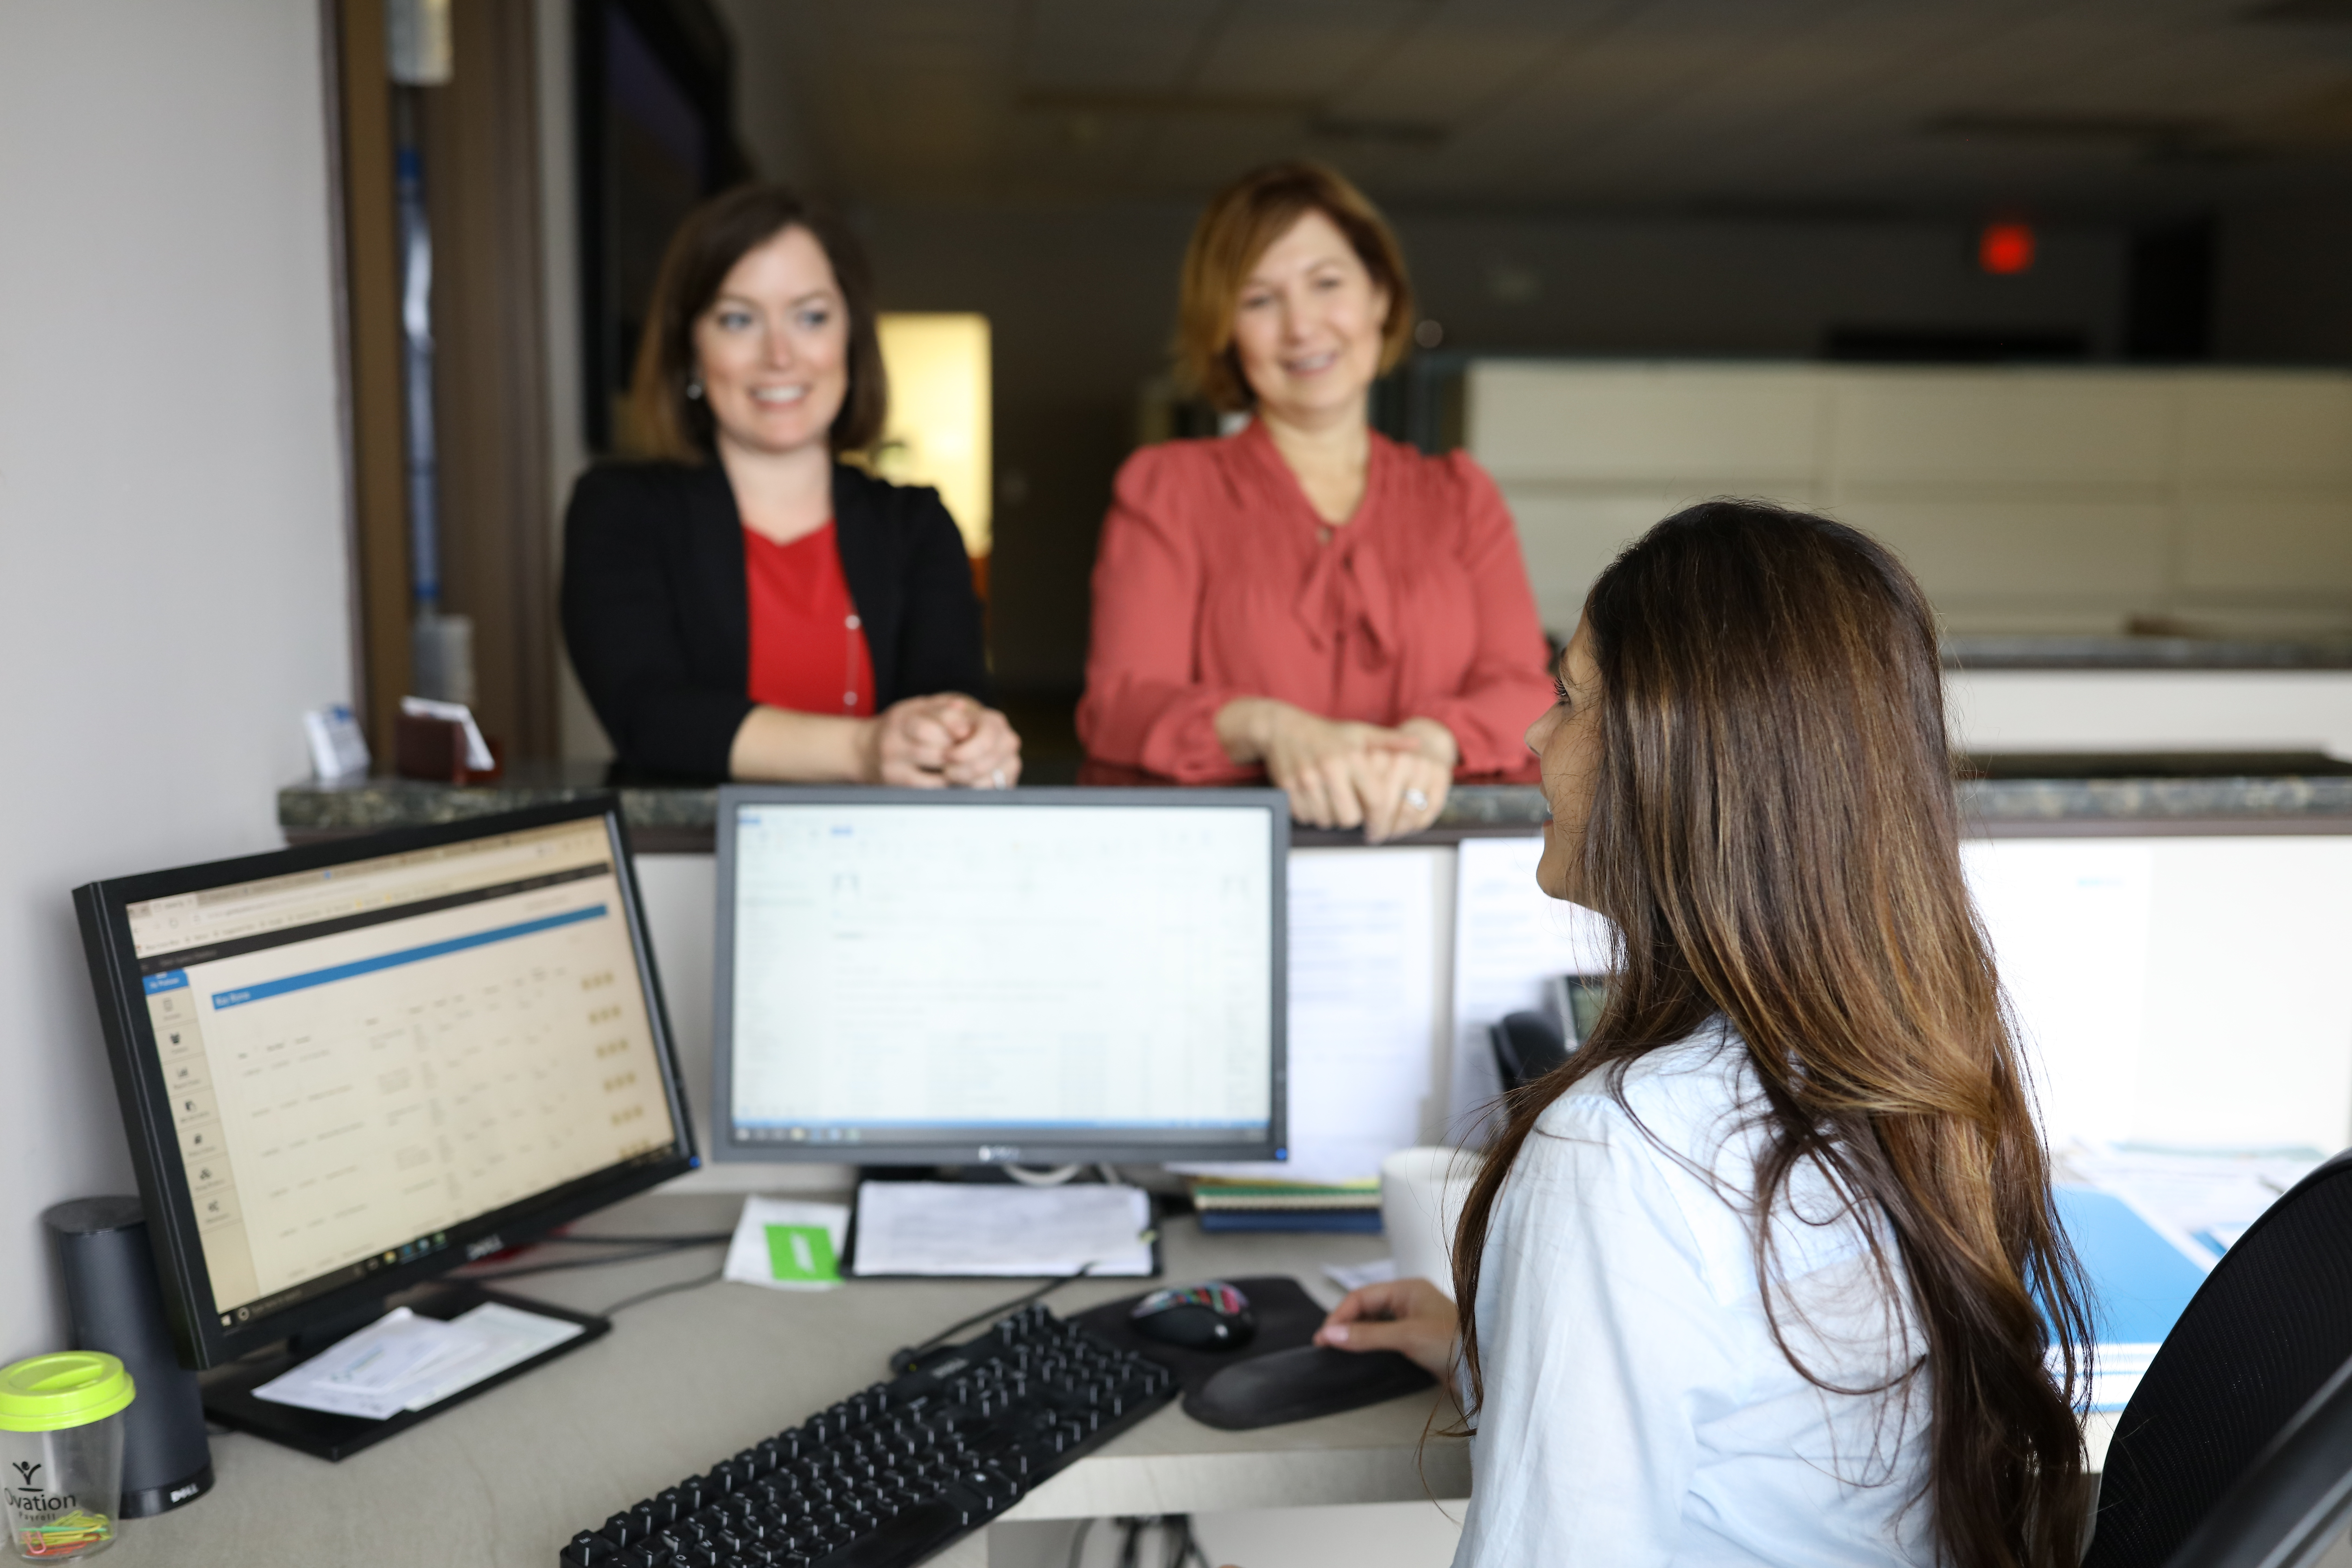 Women standing in front of managers desk chatting